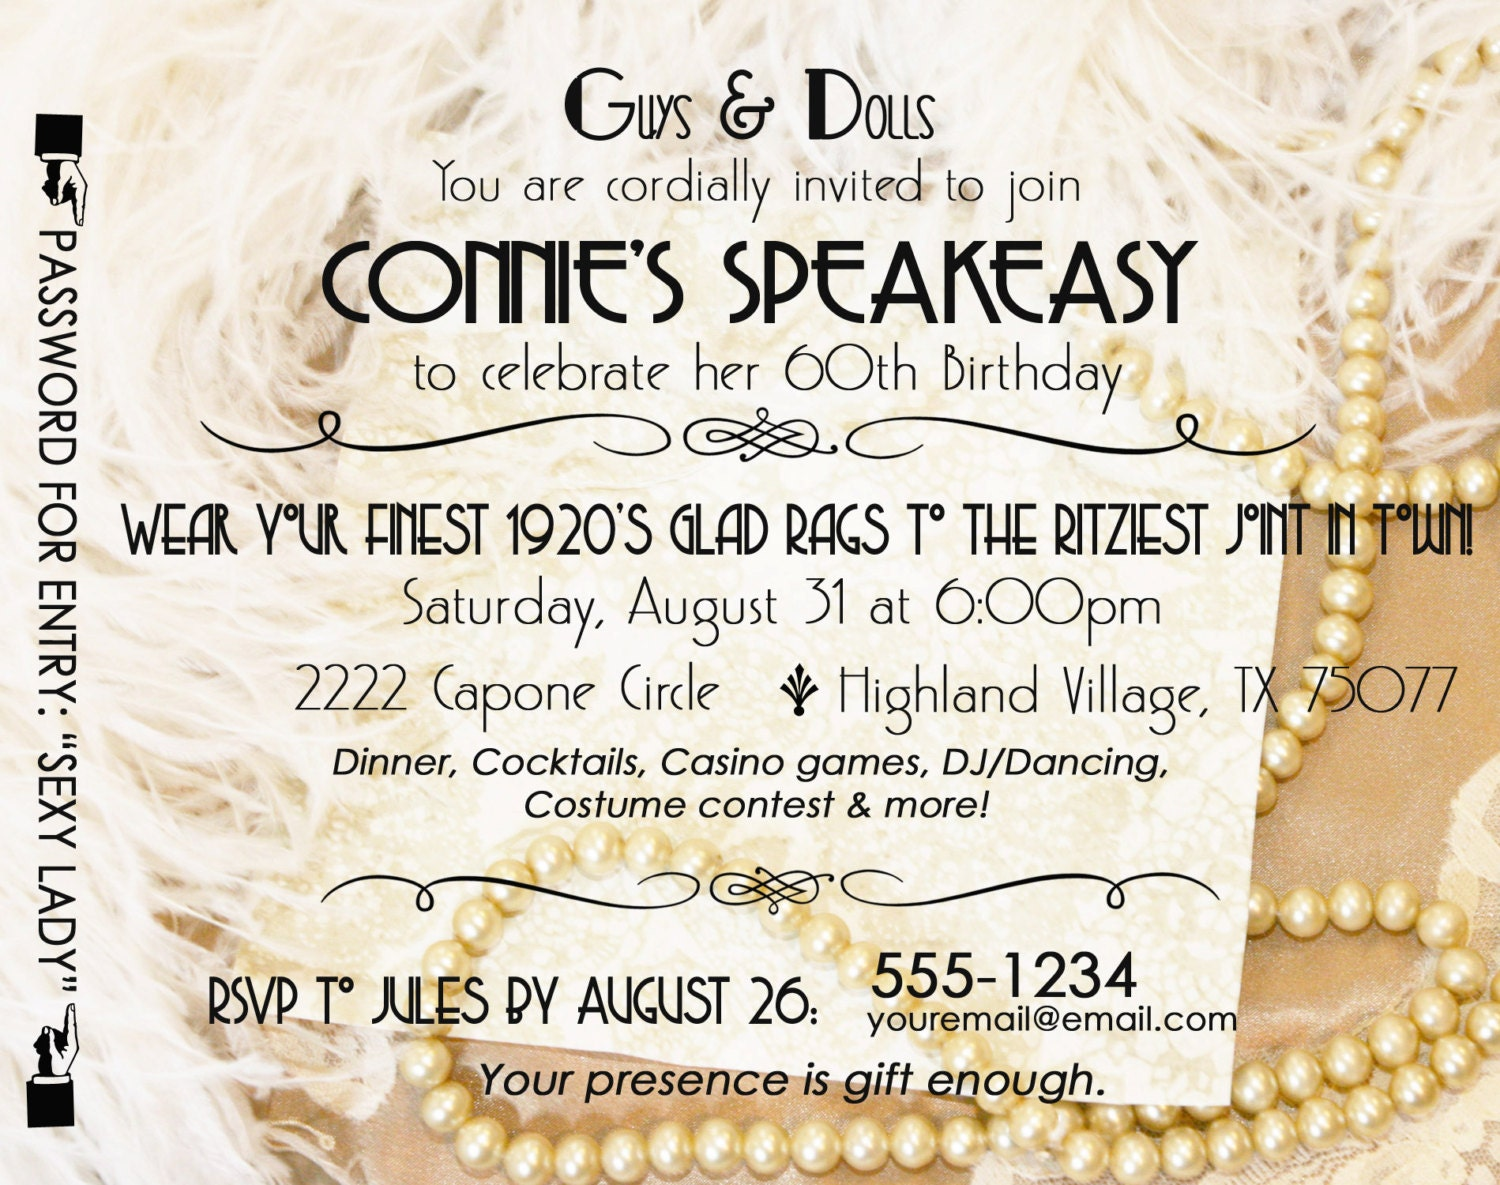 Gatsby Roaring 20s Speakeasy Invitation Twenties Wedding